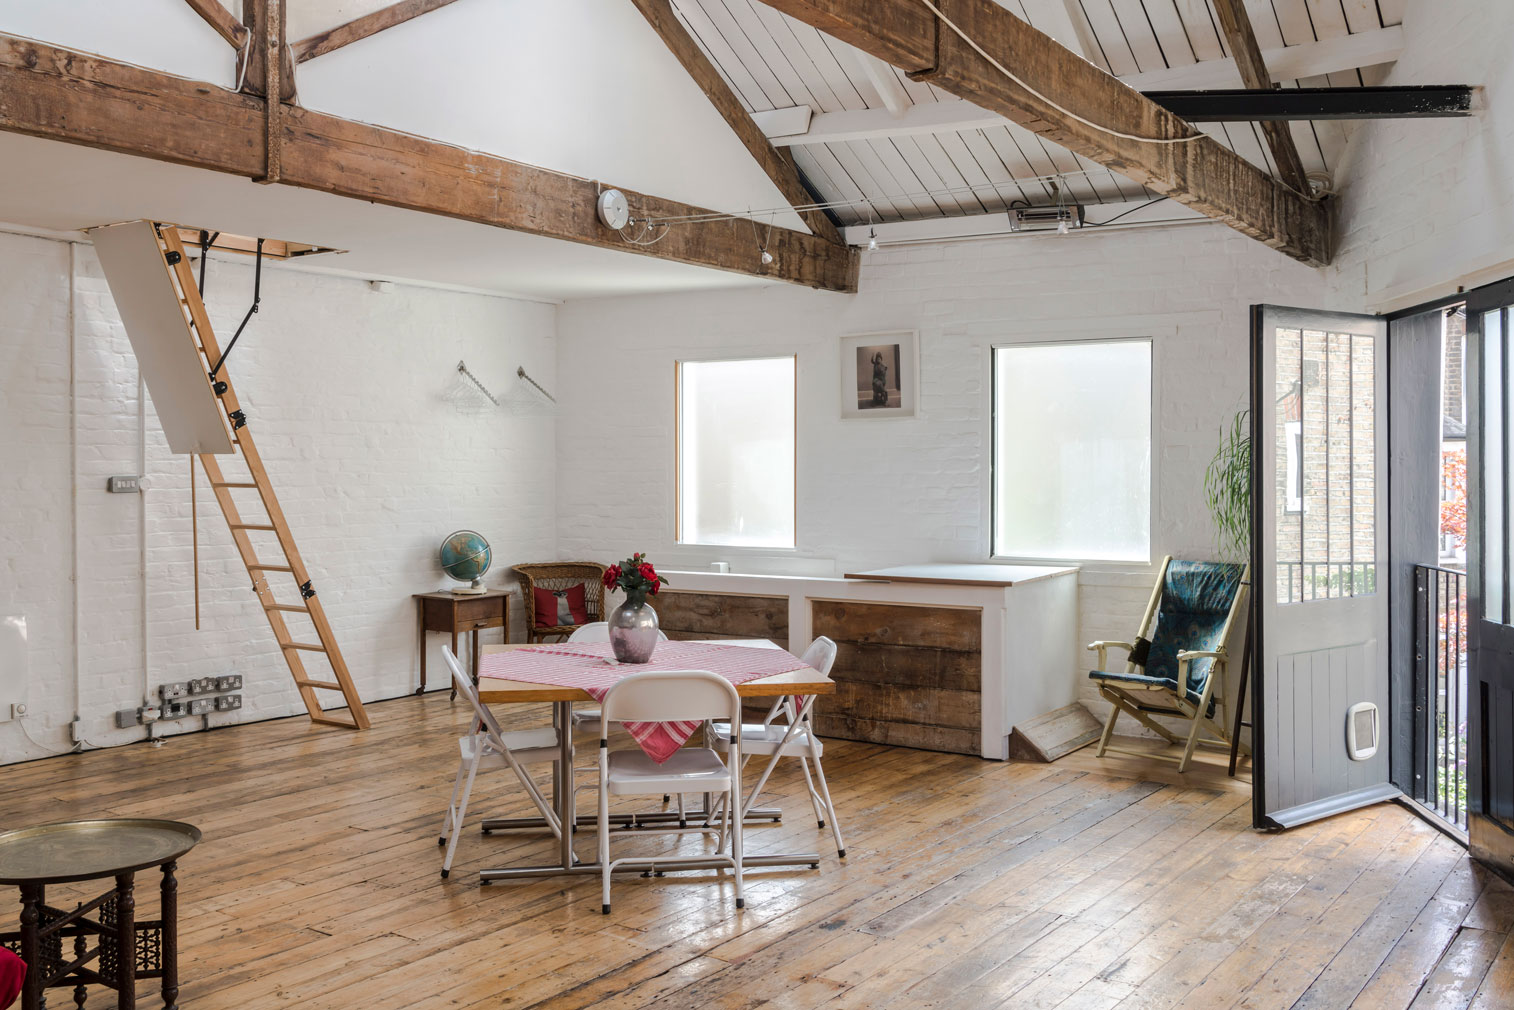 Renovation challenge: a rustic converted workshop in South London